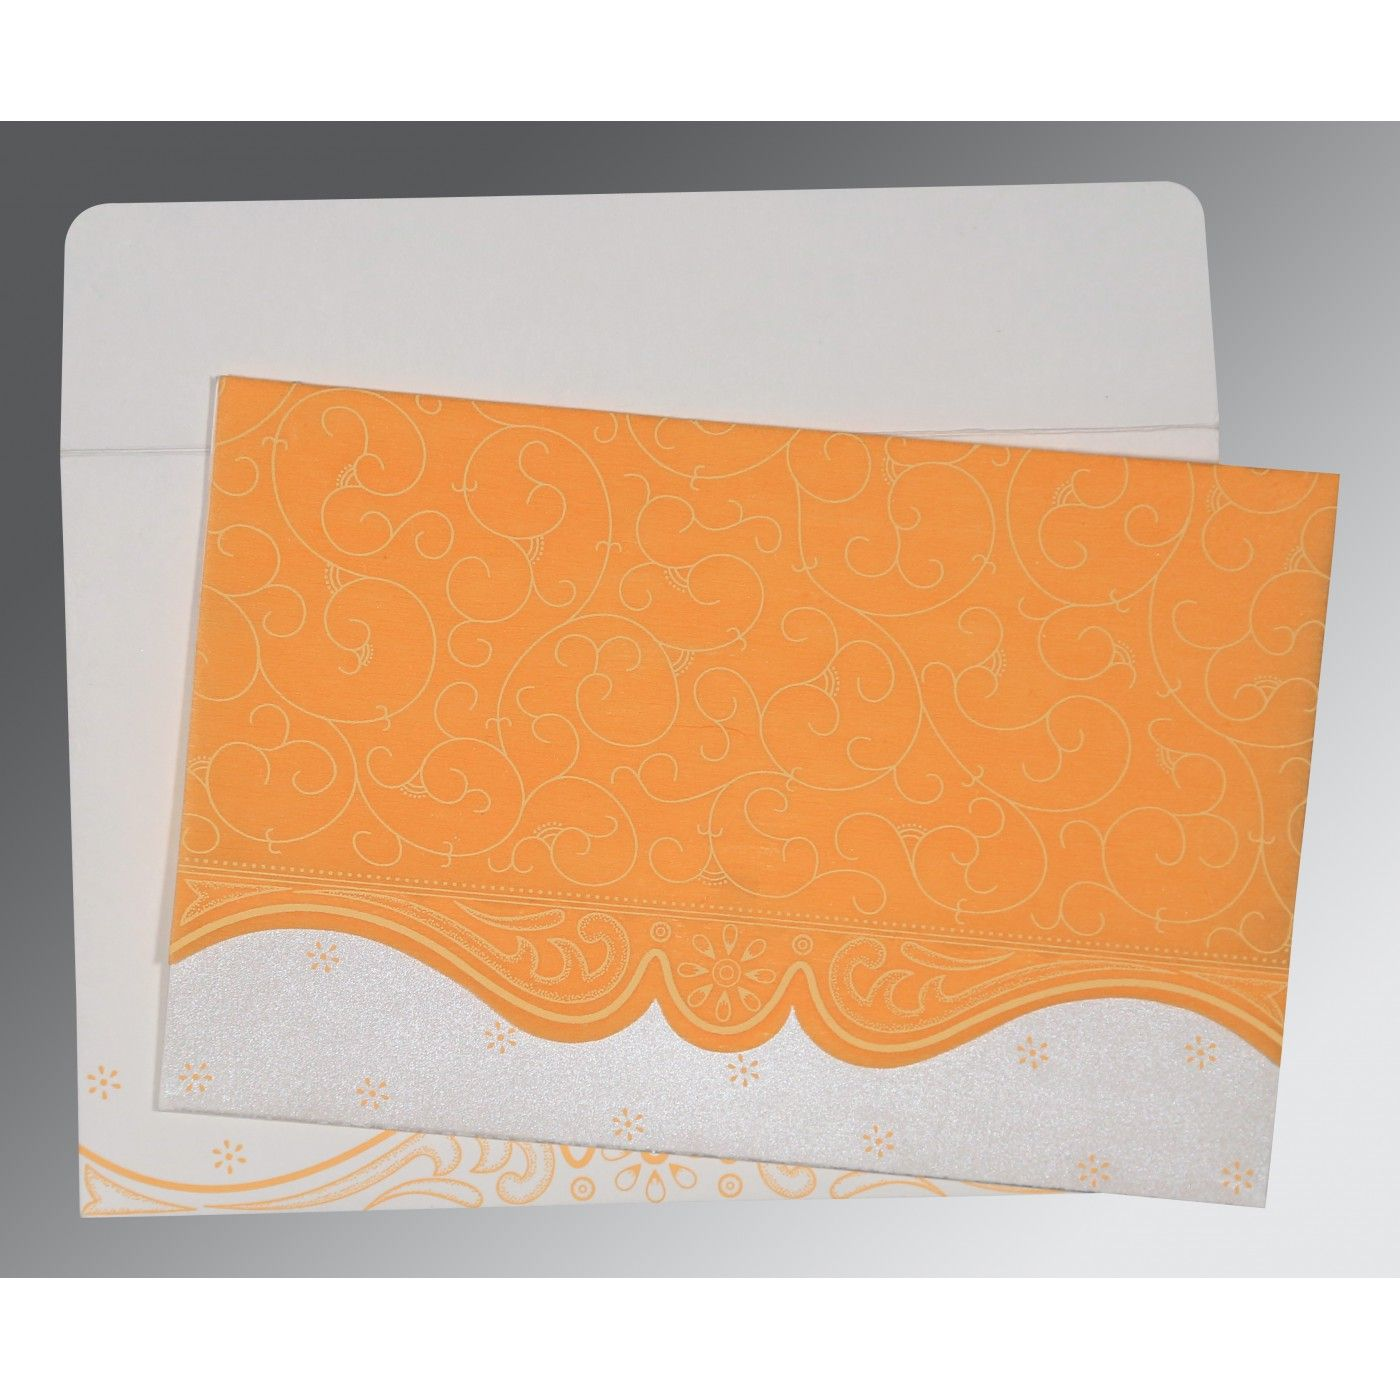 VIVID ORANGE MATTE EMBOSSED WEDDING INVITATION : CG-8221F - IndianWeddingCards